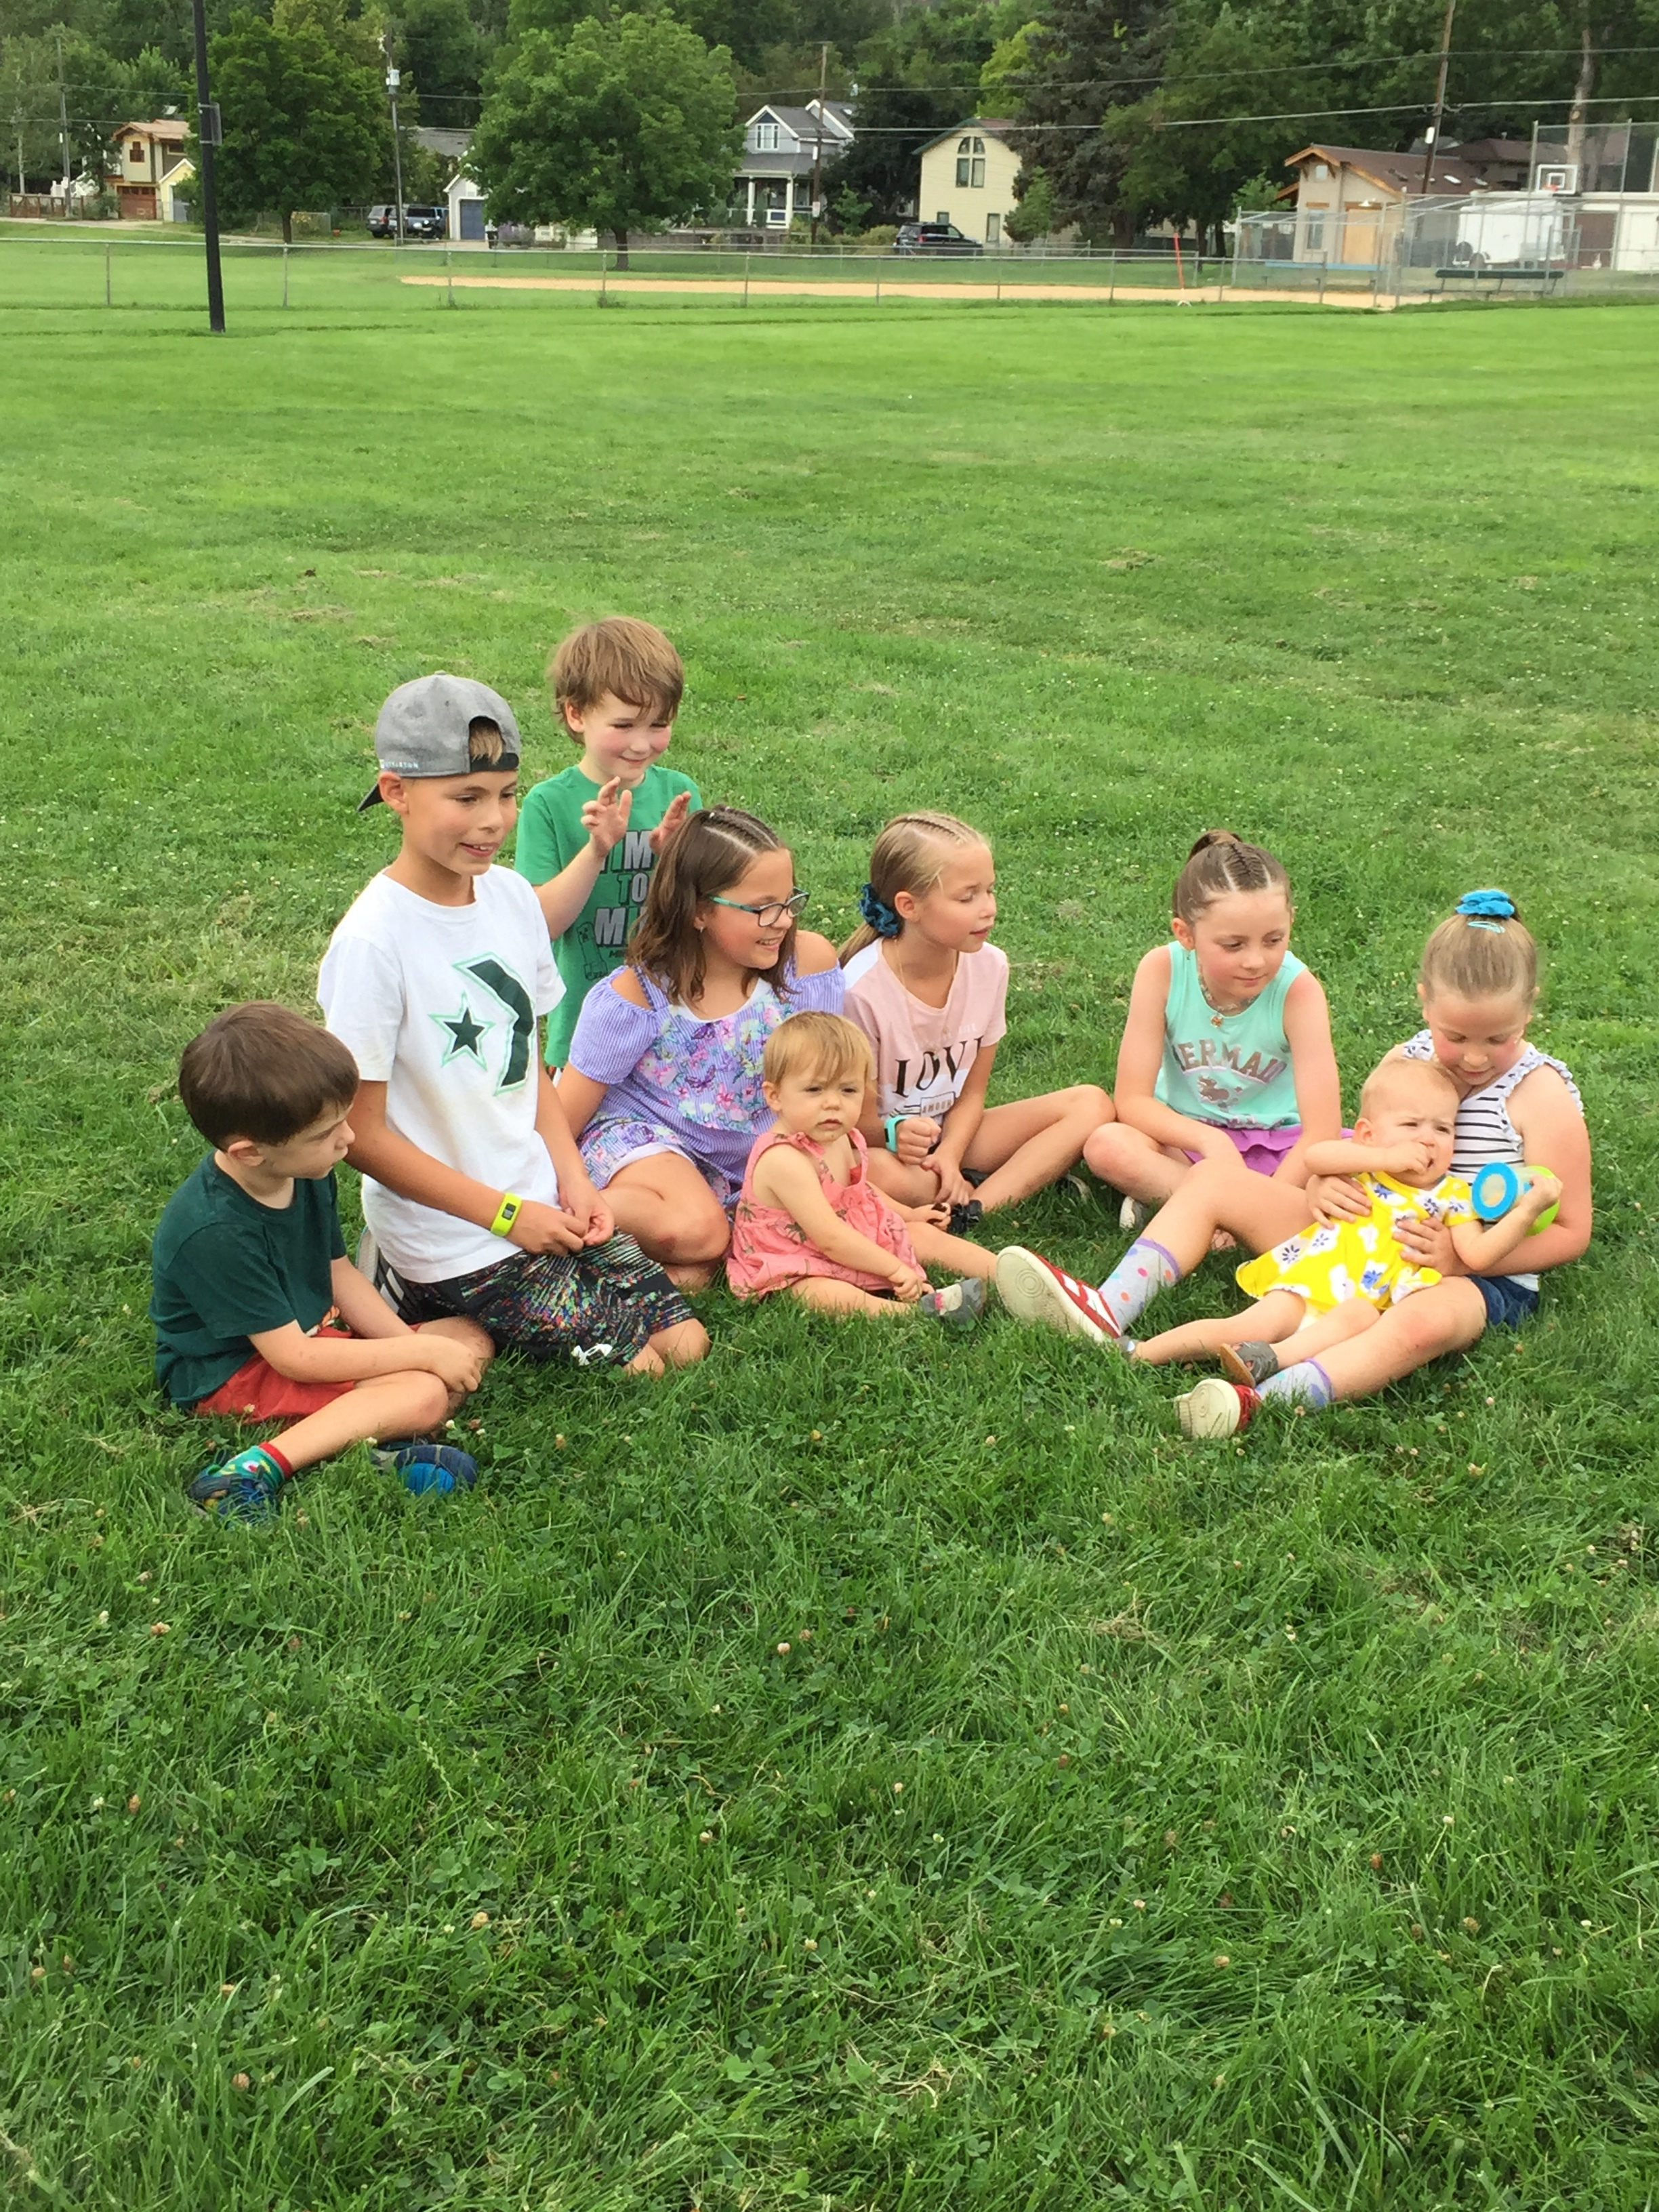 Our grandkids and great-nieces and nephews at family picnic.